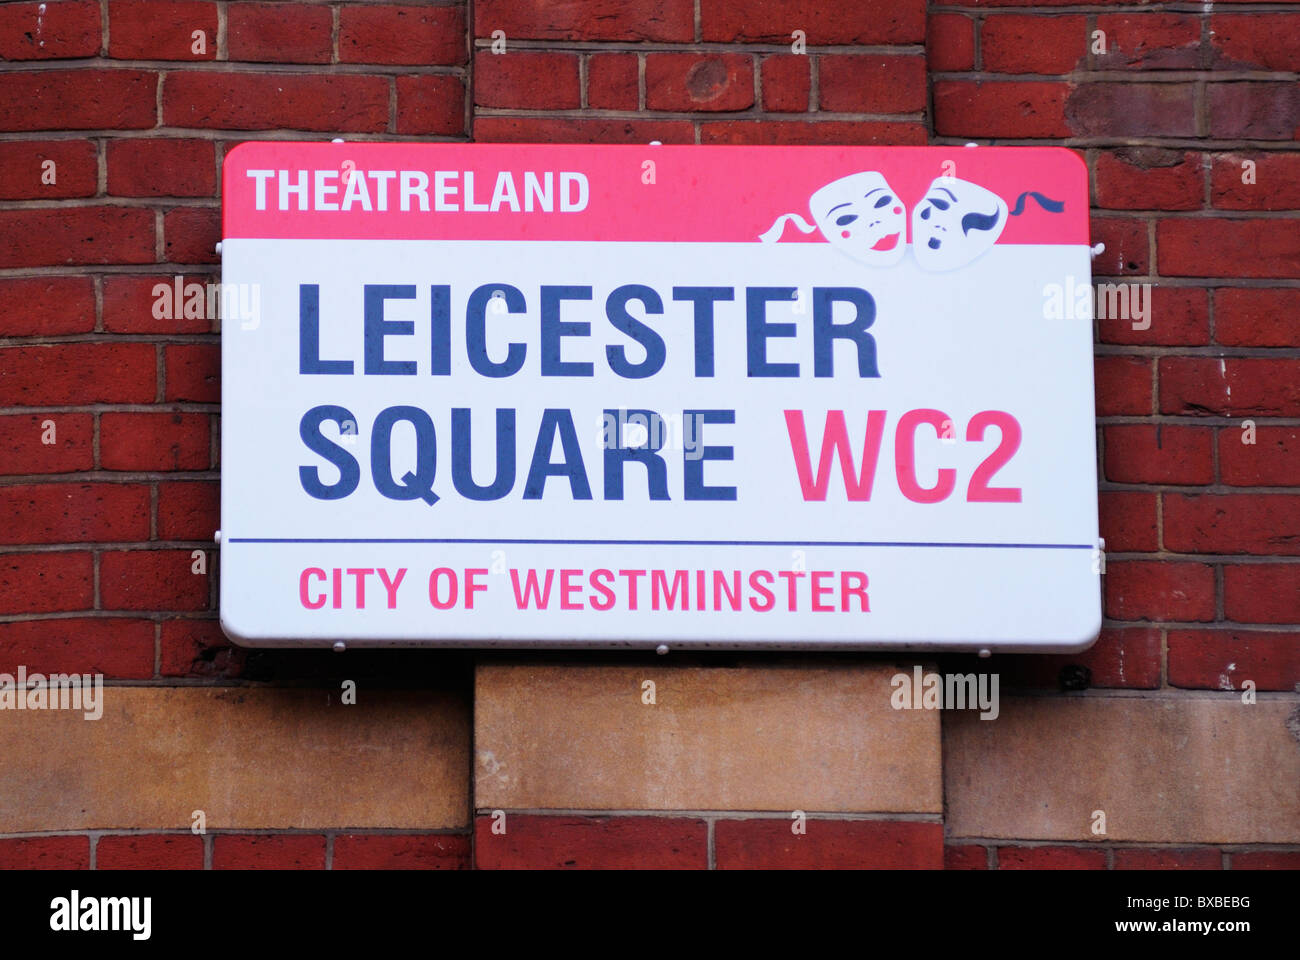 Theatreland Leicester Square WC2 Street Sign, London, England, UK - Stock Image